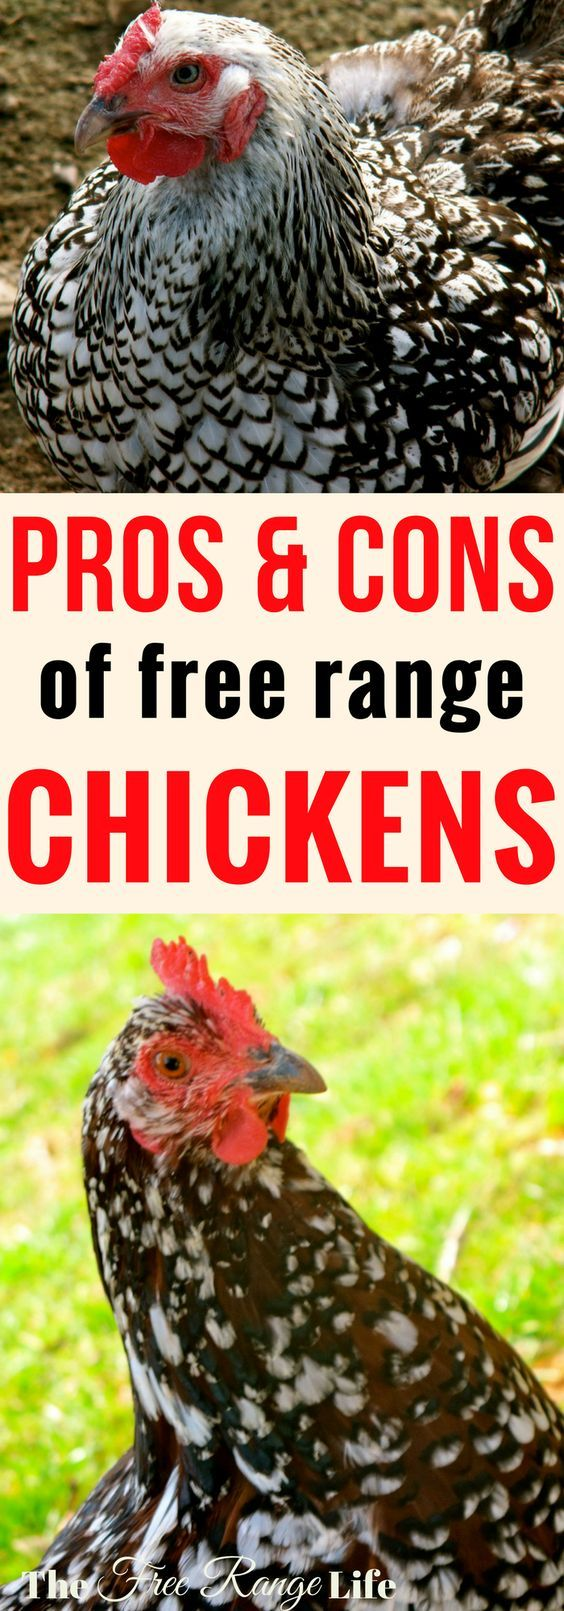 Is free ranging your chickens really the best option for you? Take a look at the pros and cons of free range chickens to see which is the best way to raise your hens